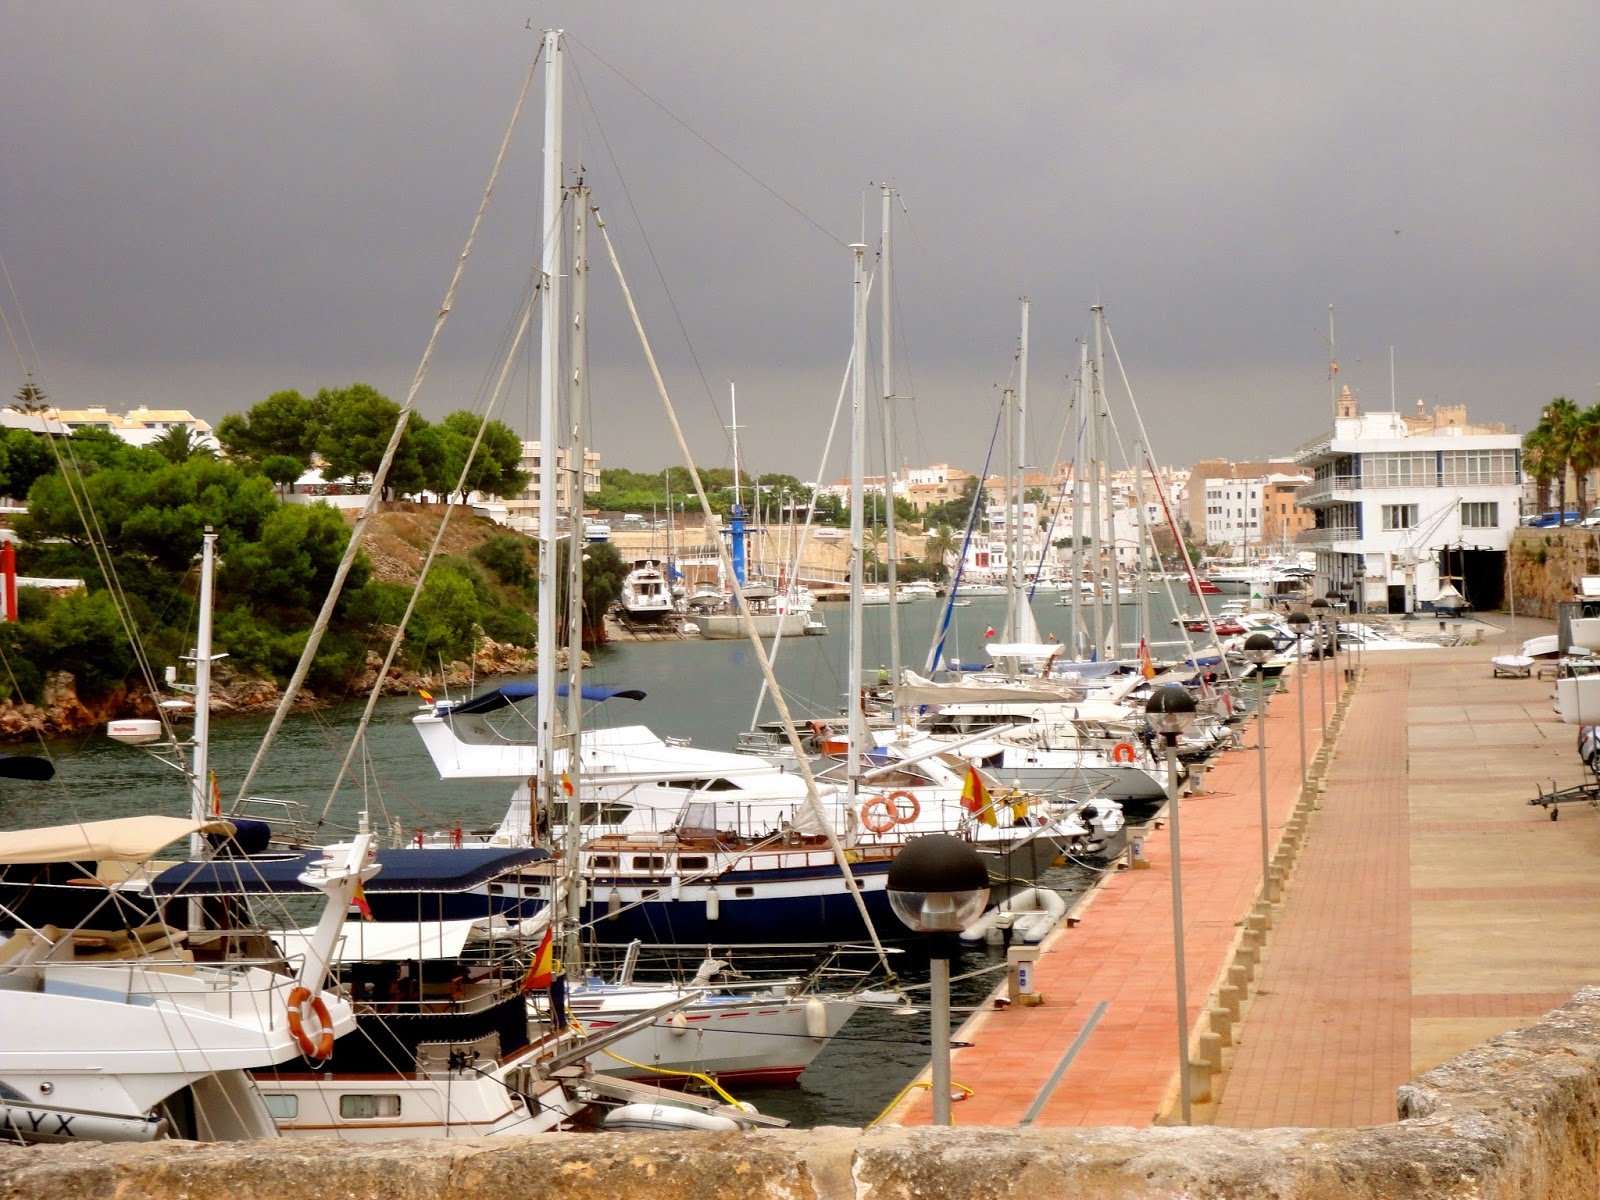 Travel Inspiration | Menorca, Spain | harbour full of small boats in town